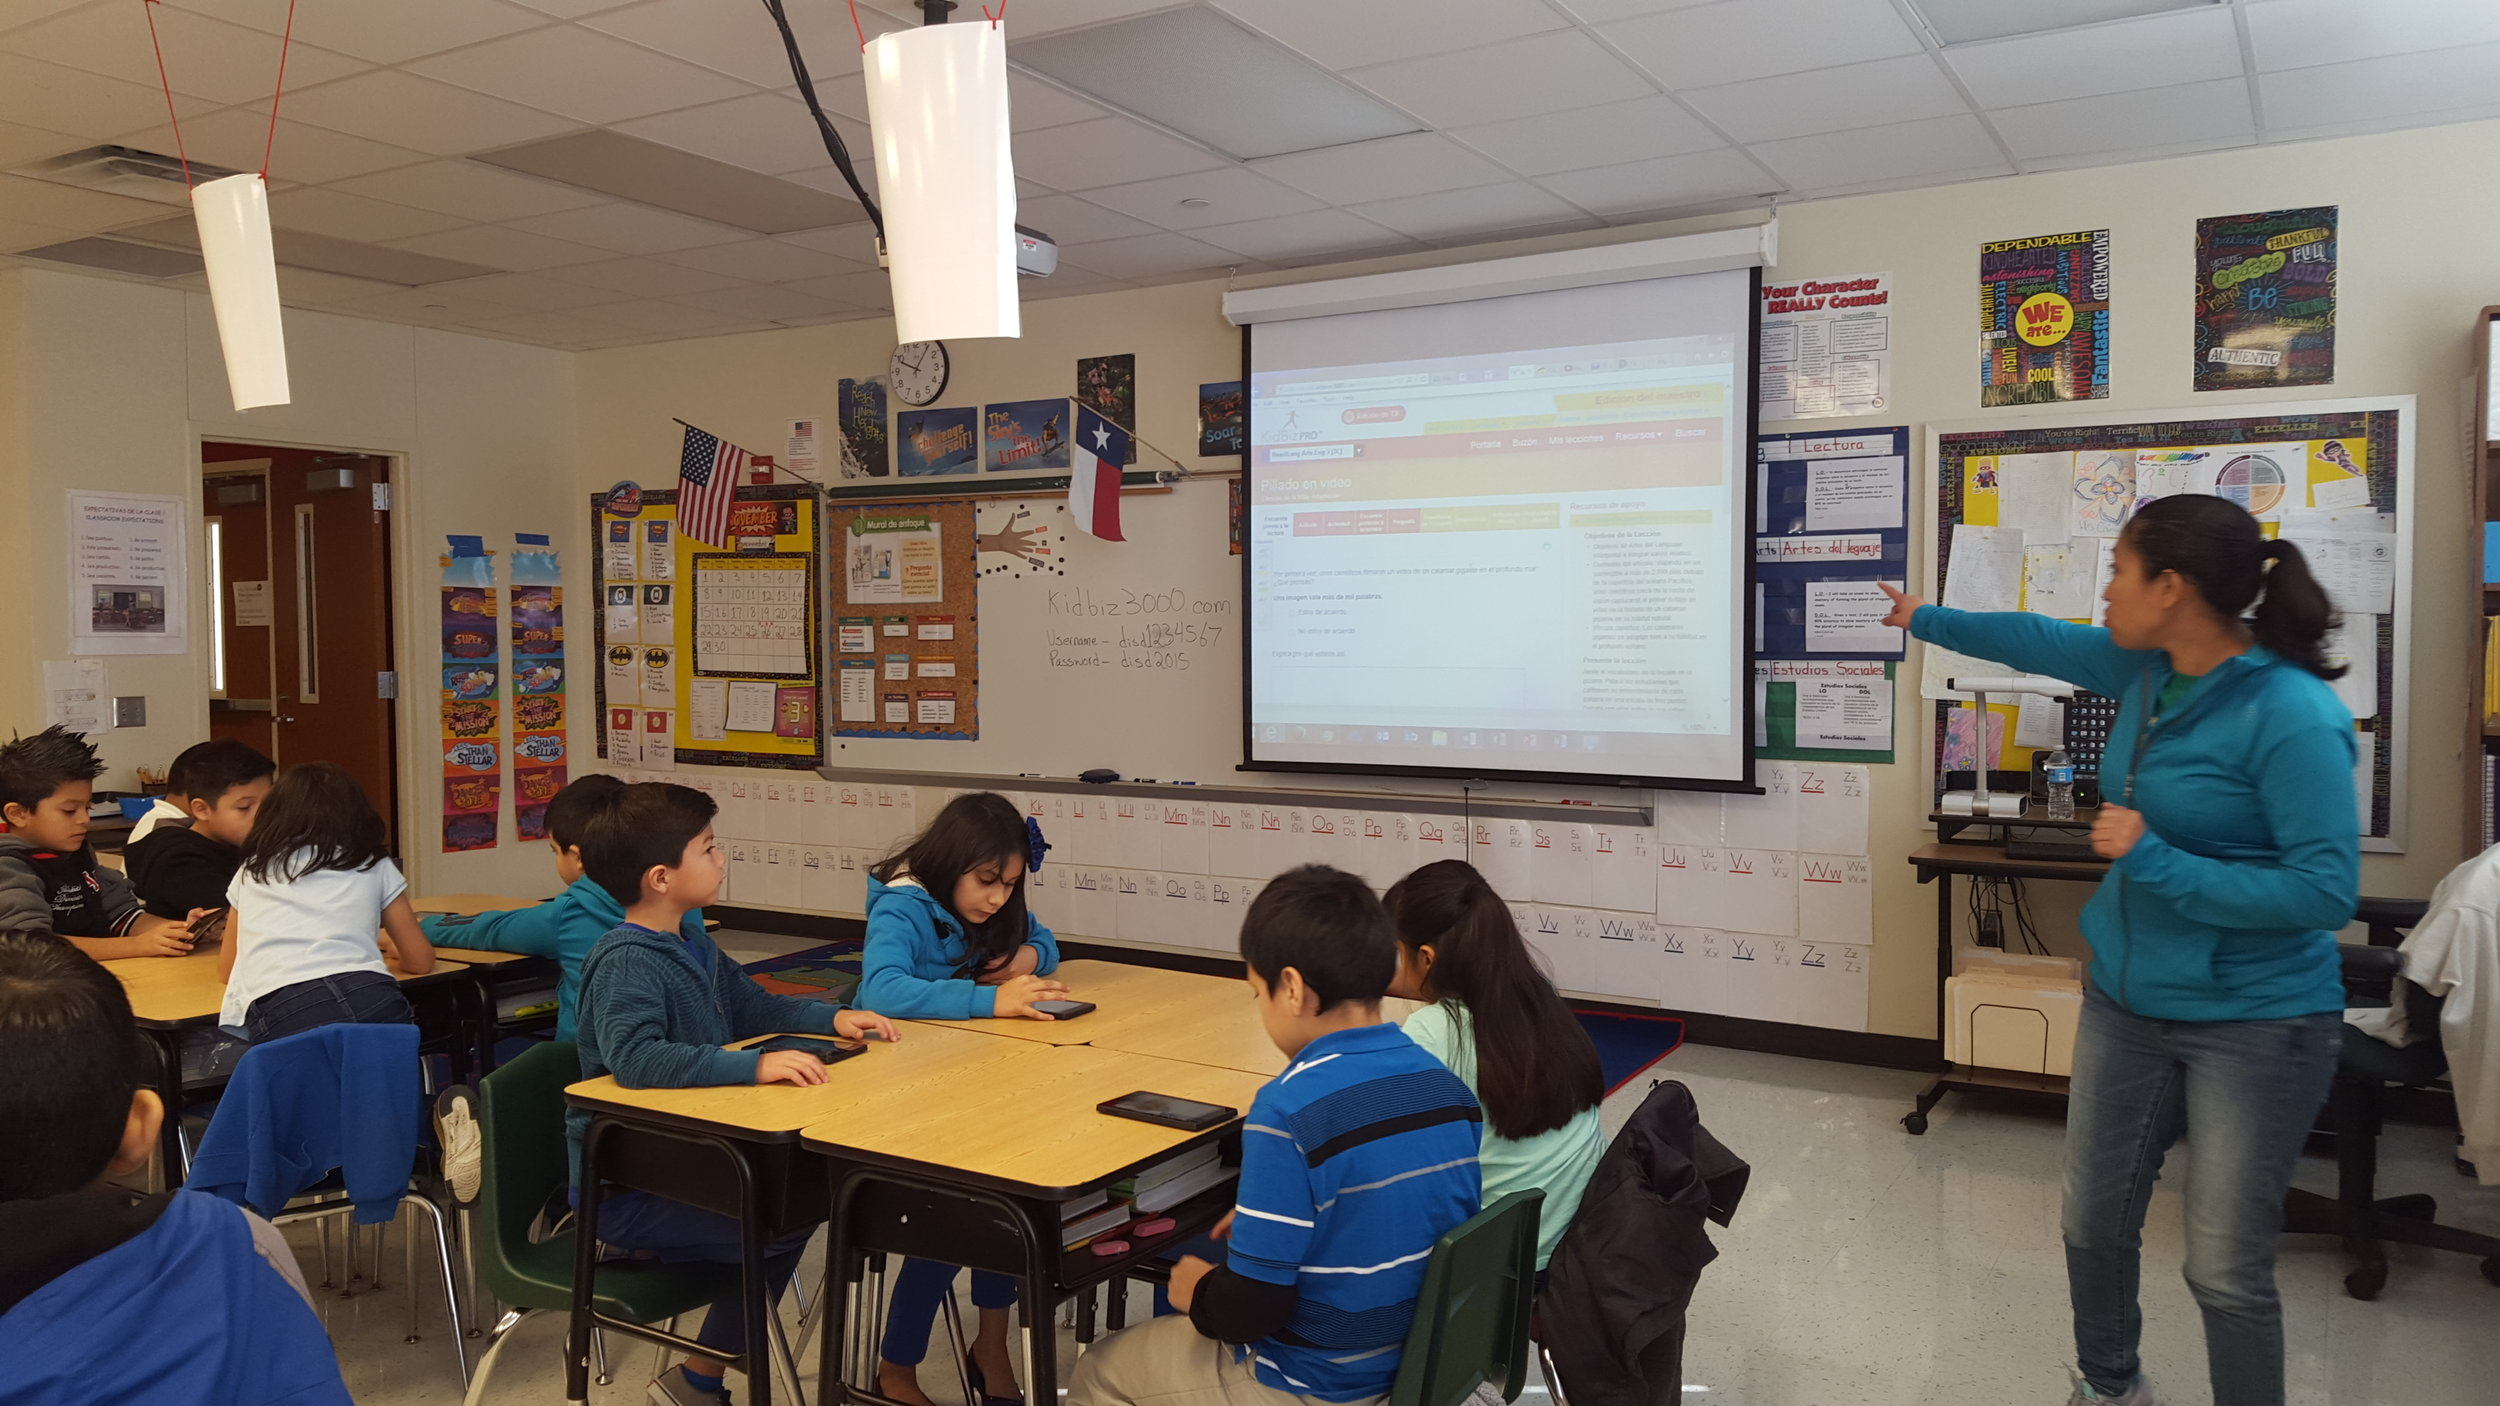 This class is following along with the teacher on Achieve 3000.